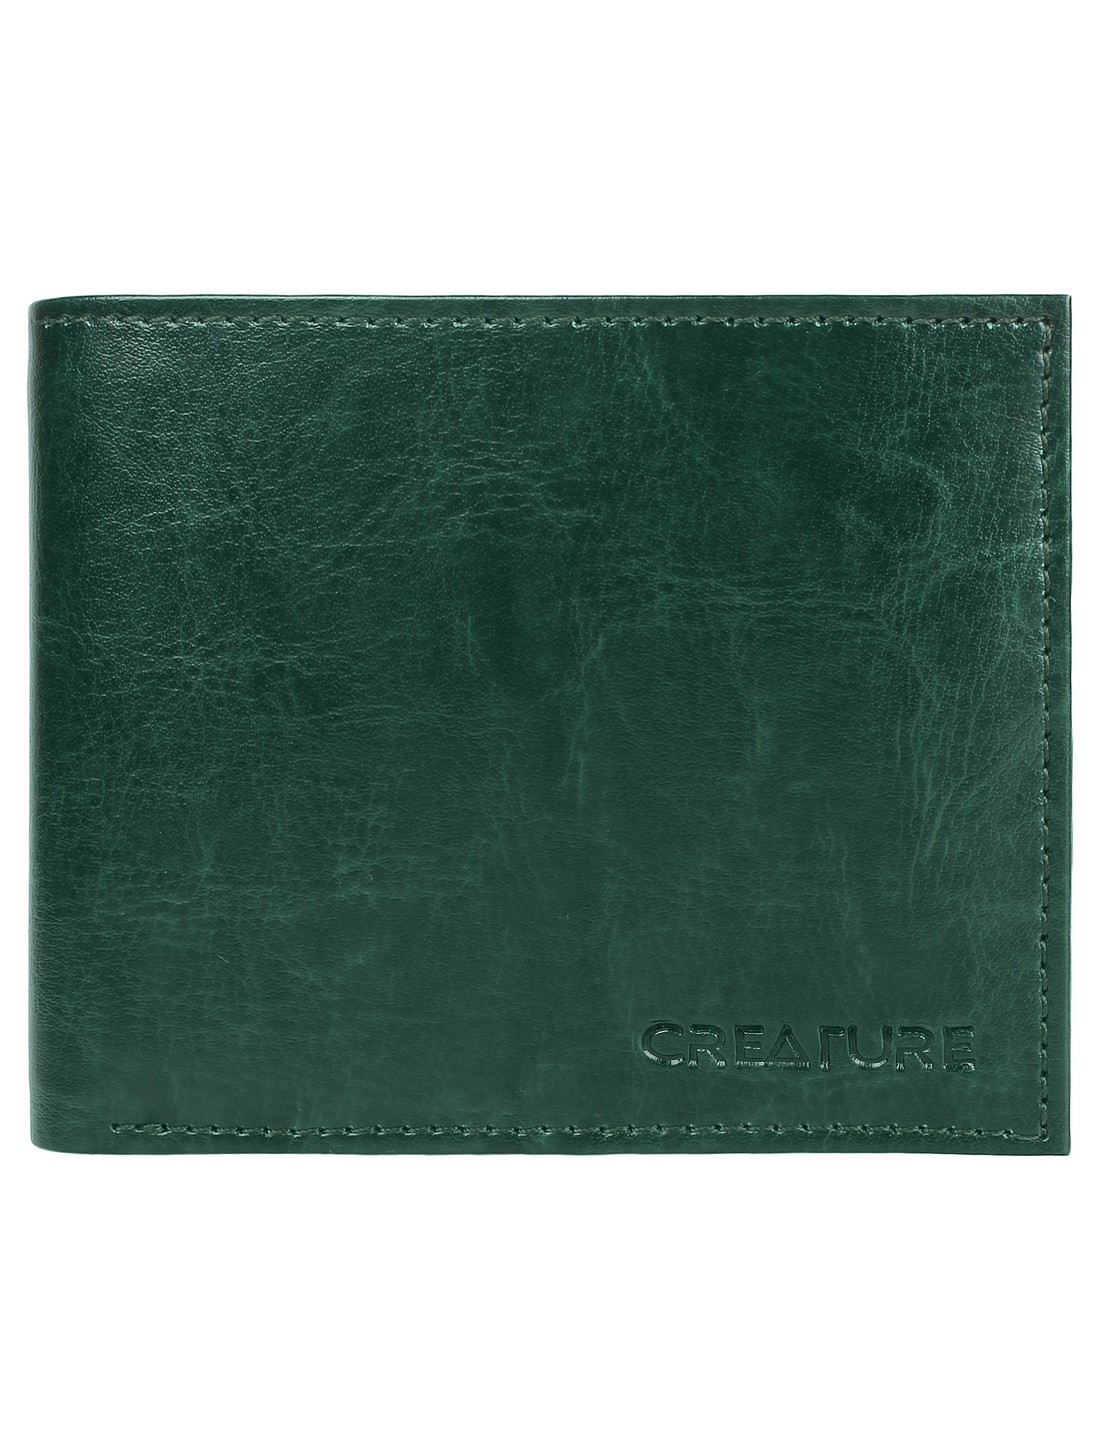 CREATURE   CREATURE Classic Bi-Fold Pu-Leather Green Wallet with Multiple Card Slots for Men